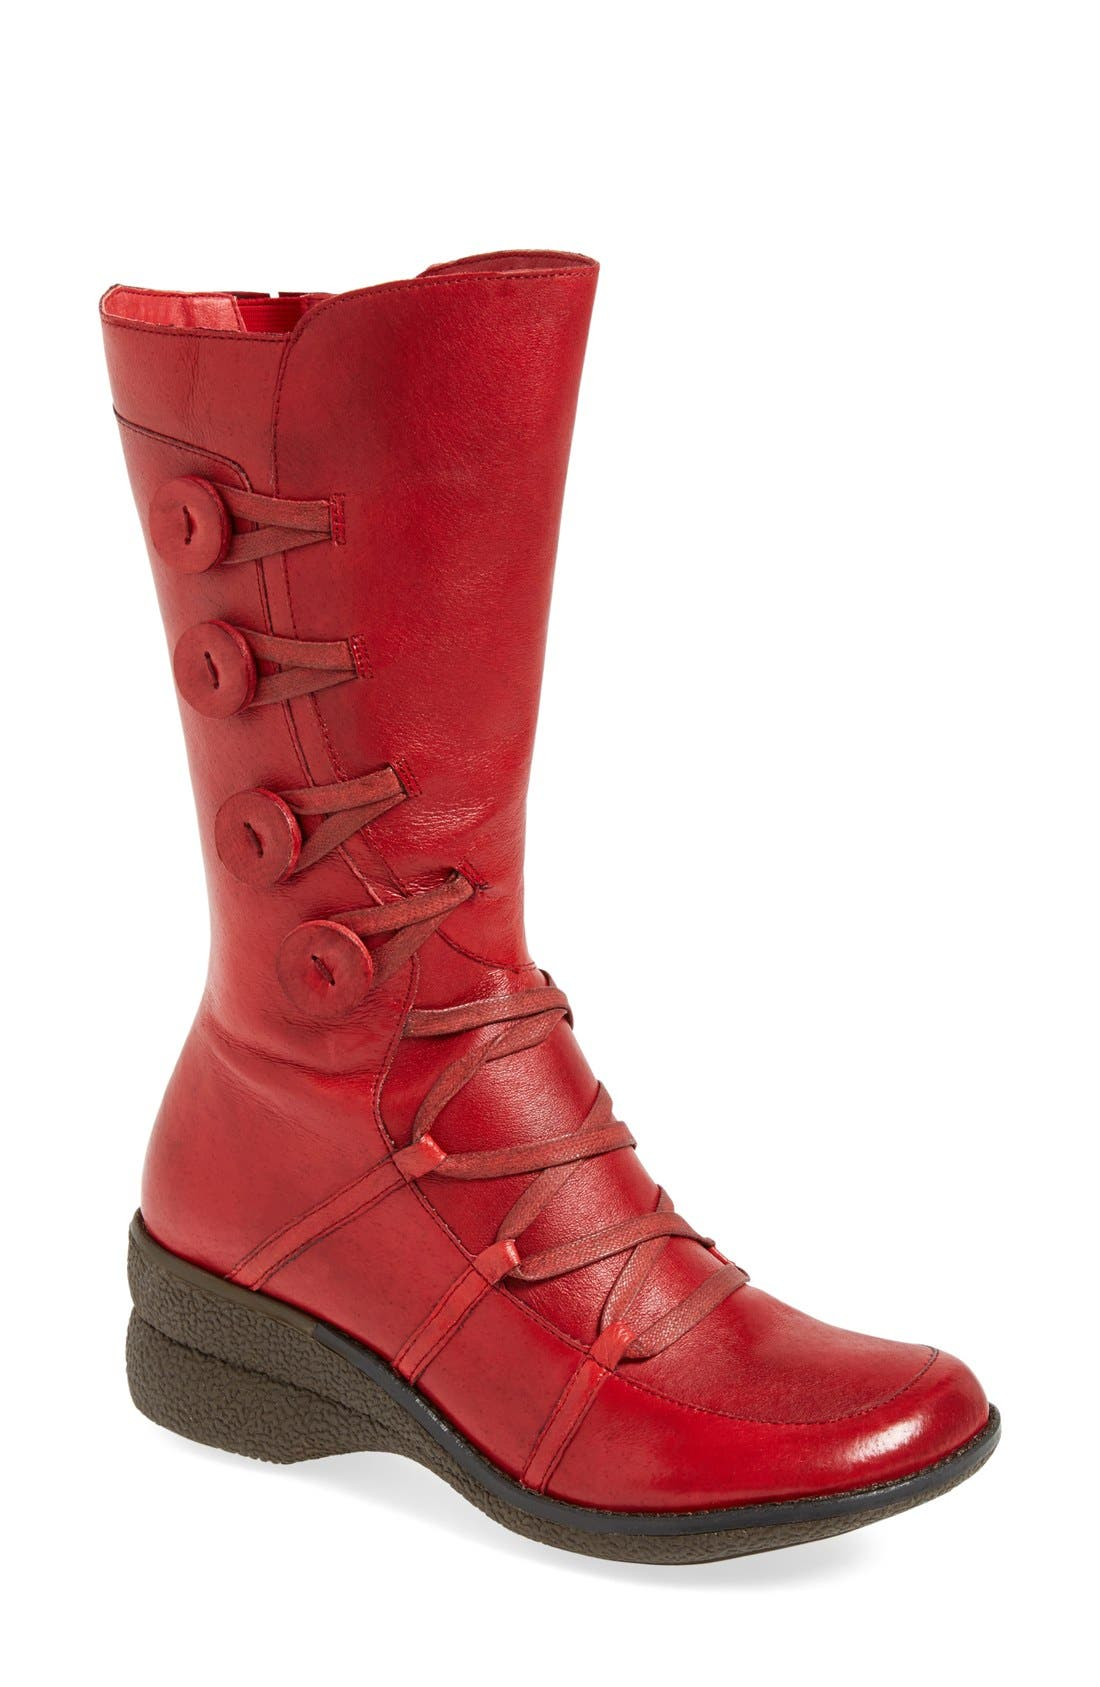 Main Image - Miz Mooz 'Olsen' Boot (Women)